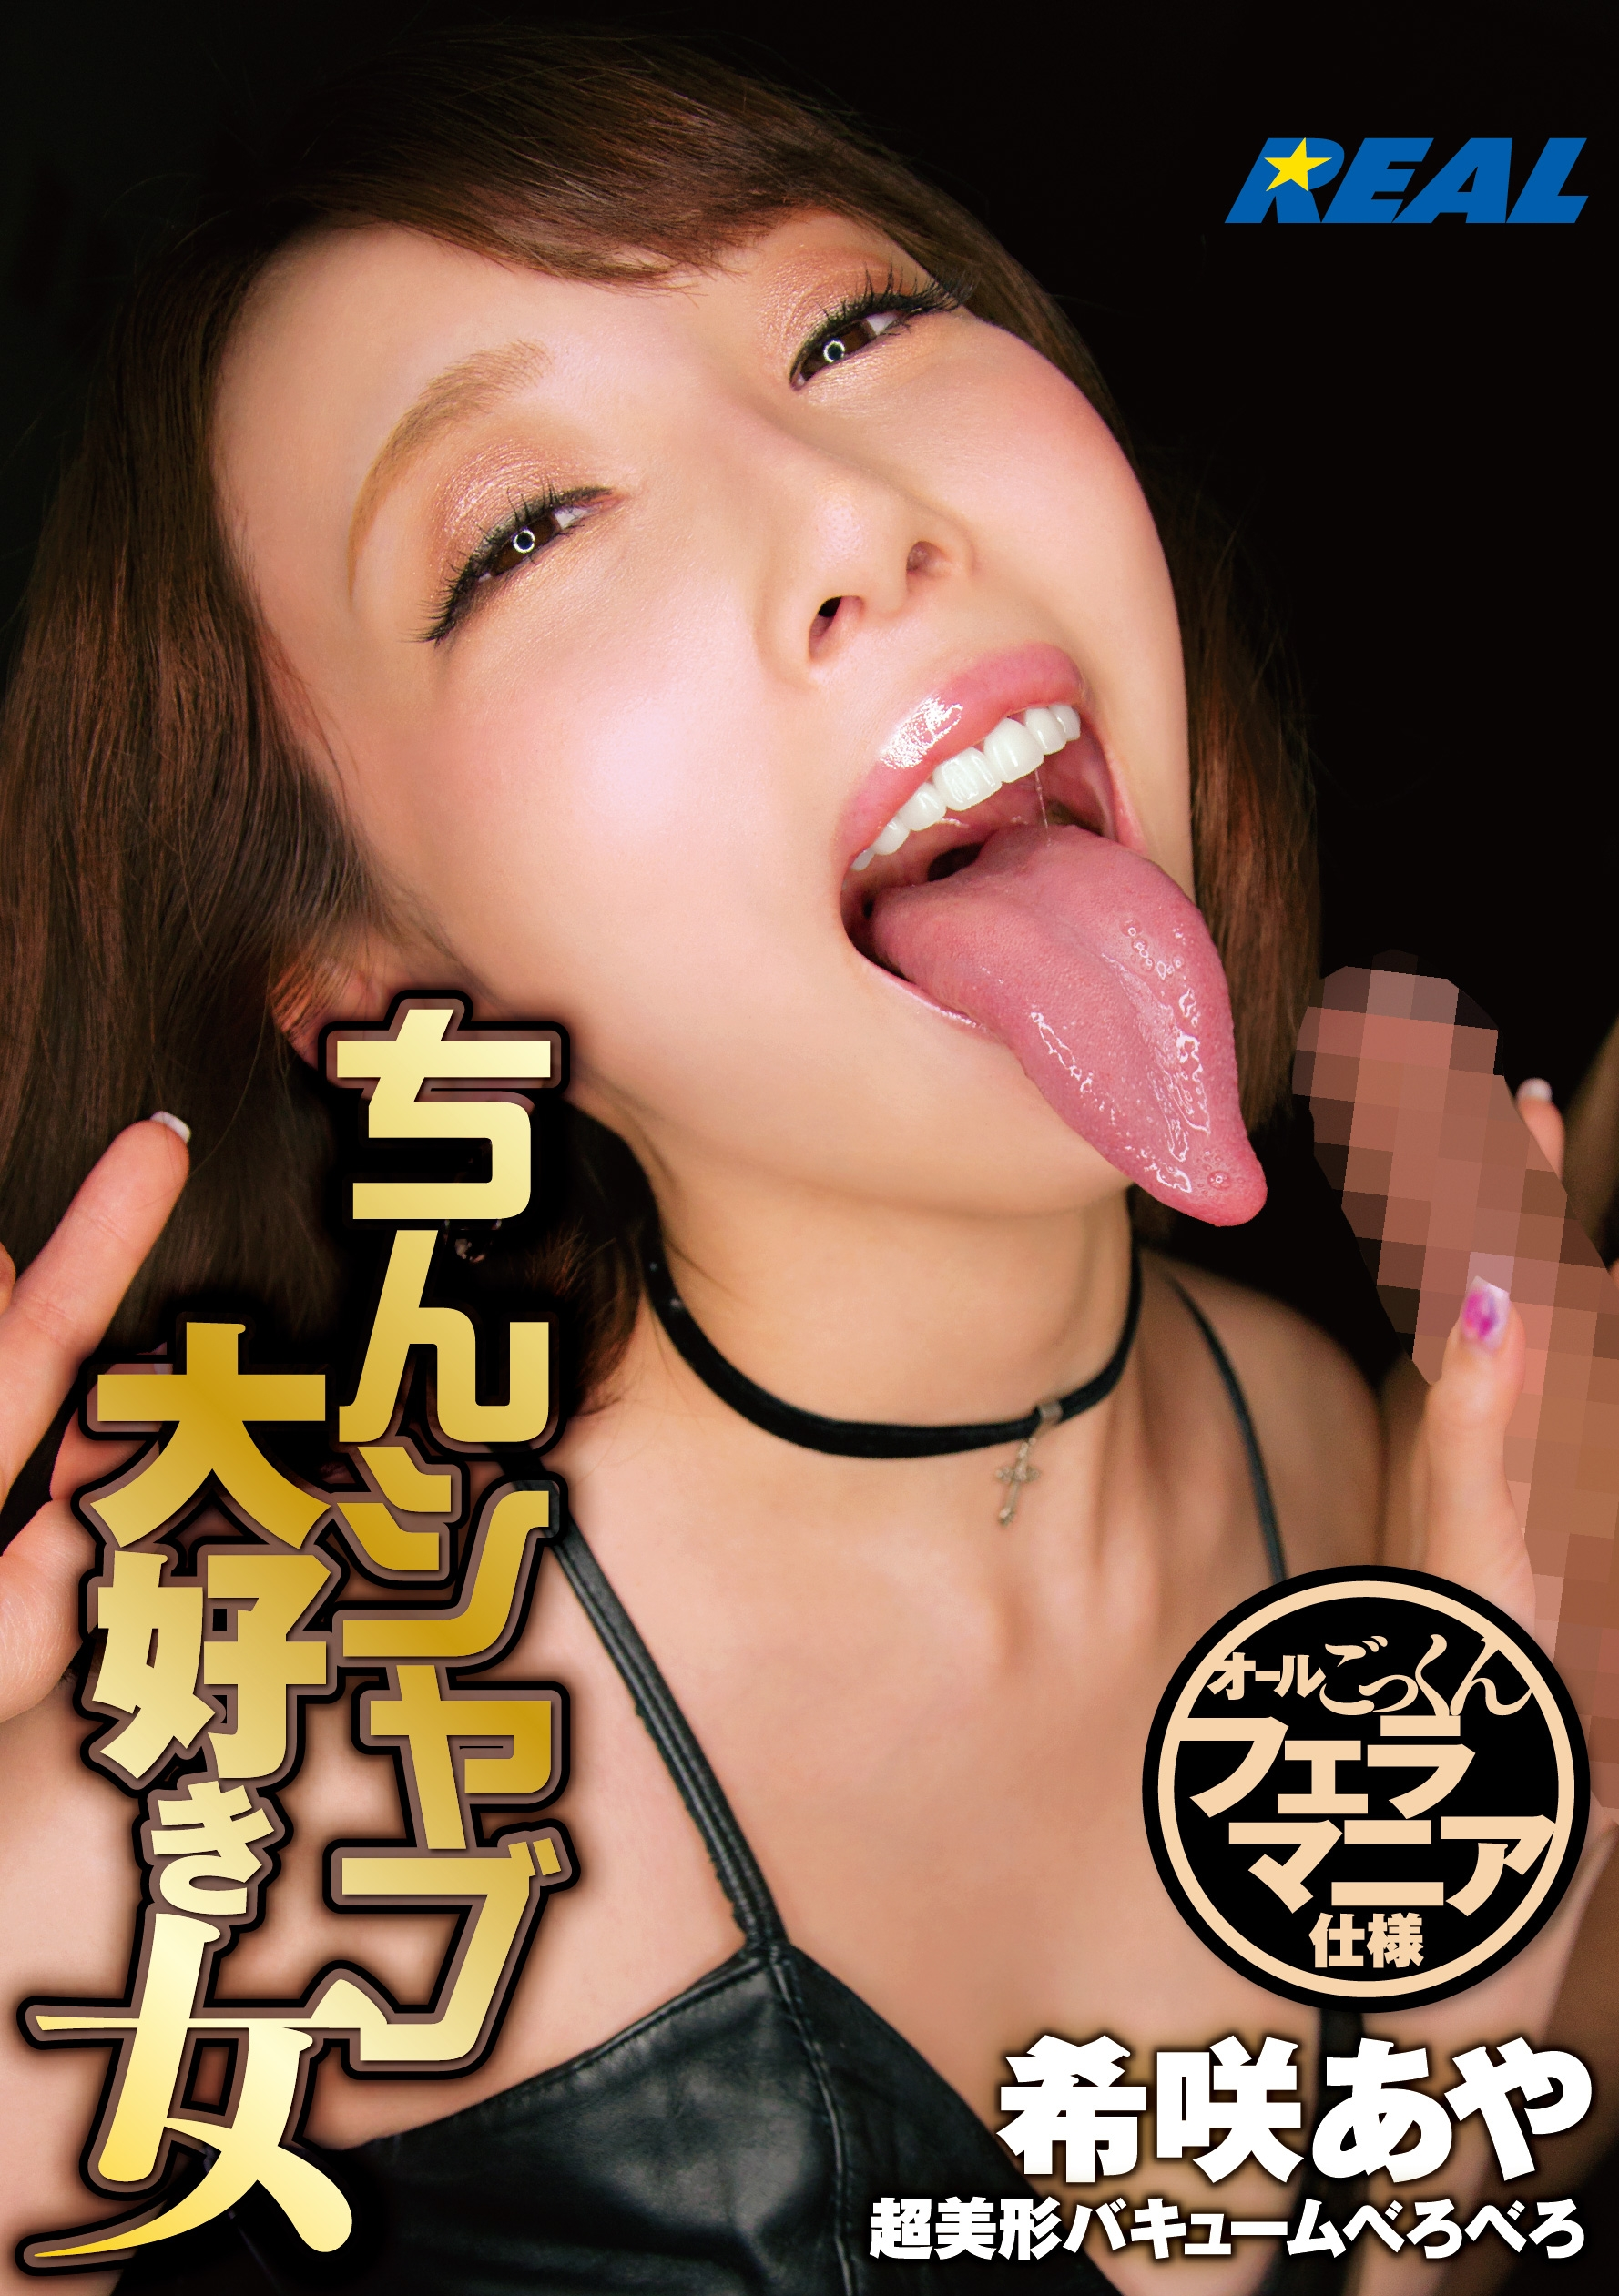 A Blow Job Lover Woman, Aya Kisaki